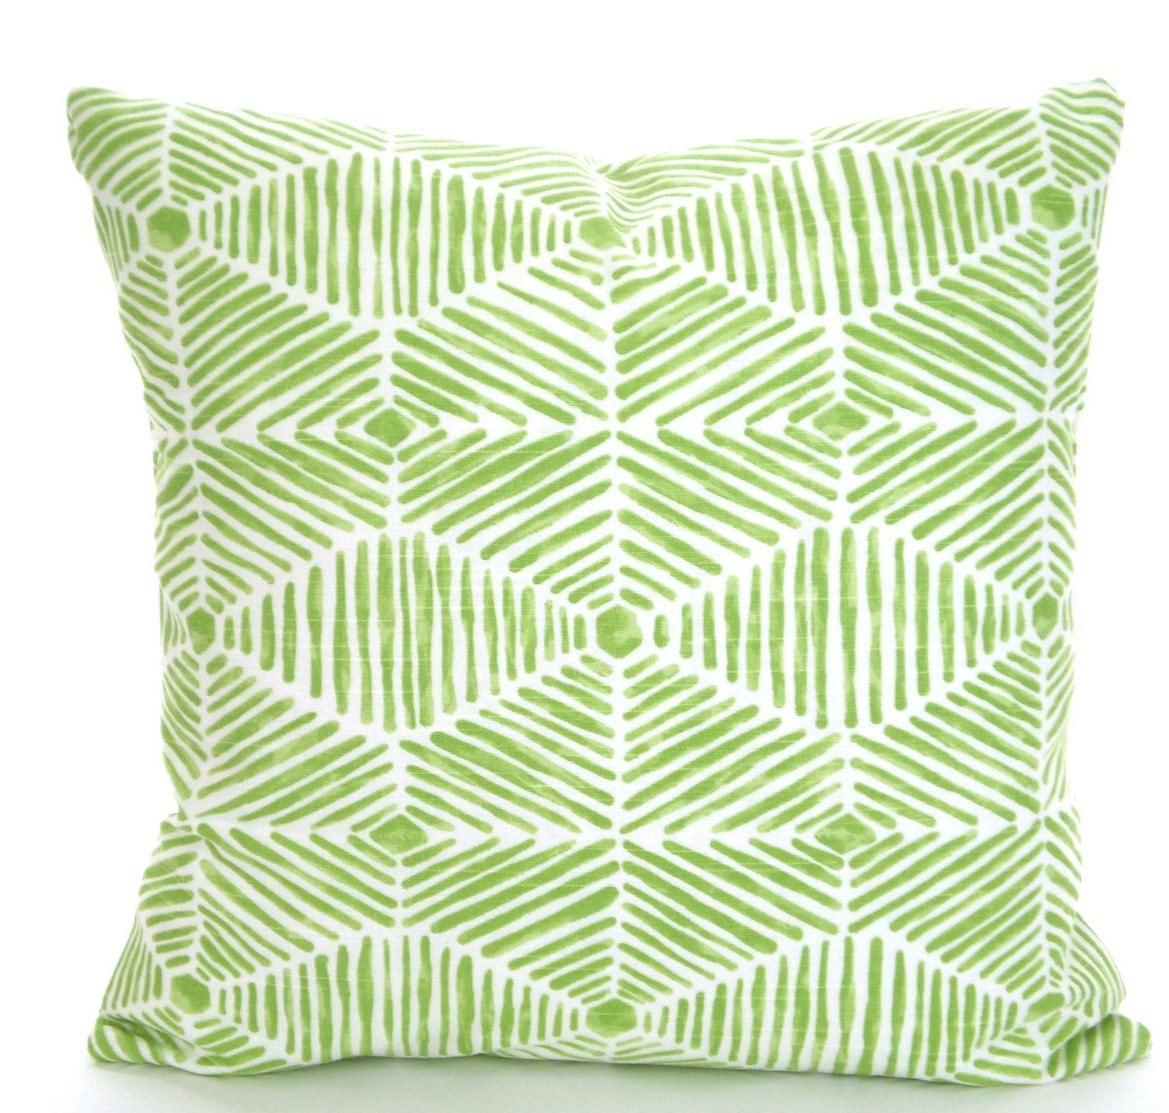 Green Decorative Throw Pillow Covers Cushion Covers Kiwi